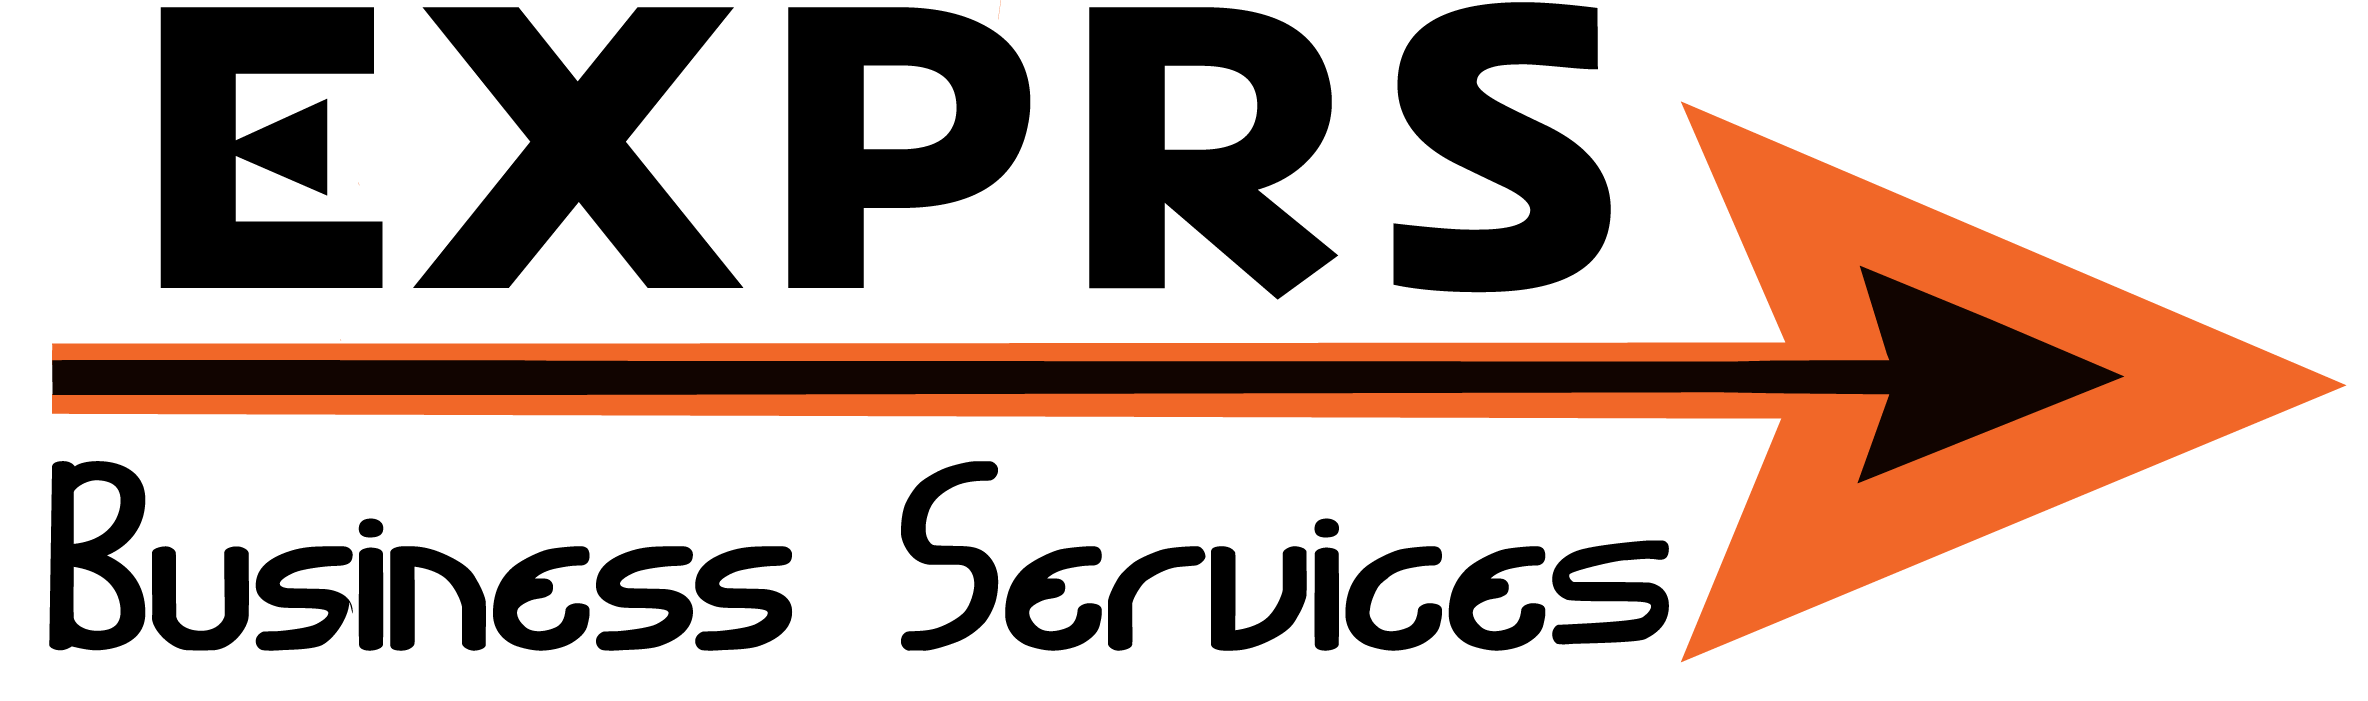 eXPRS Business Services Mobile Retina Logo